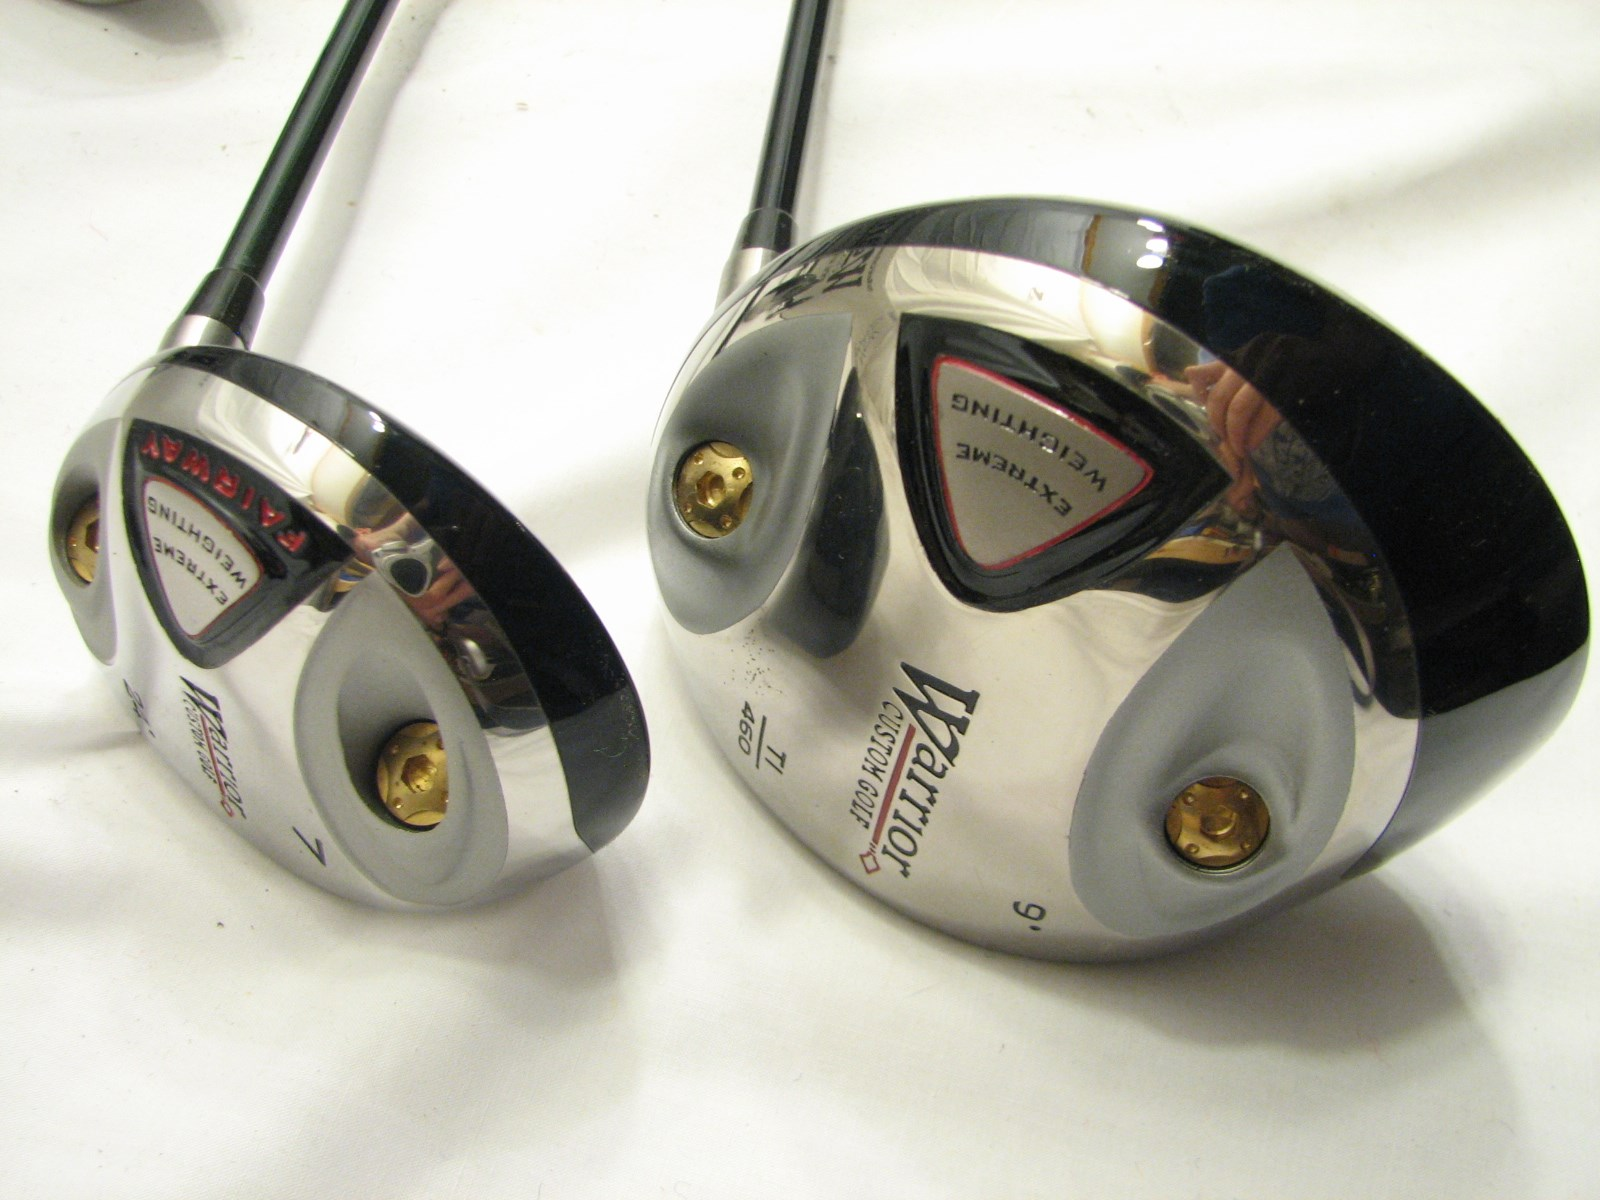 Demo Clubs - Save on Lightly Used Golf Clubs at Golf Discount